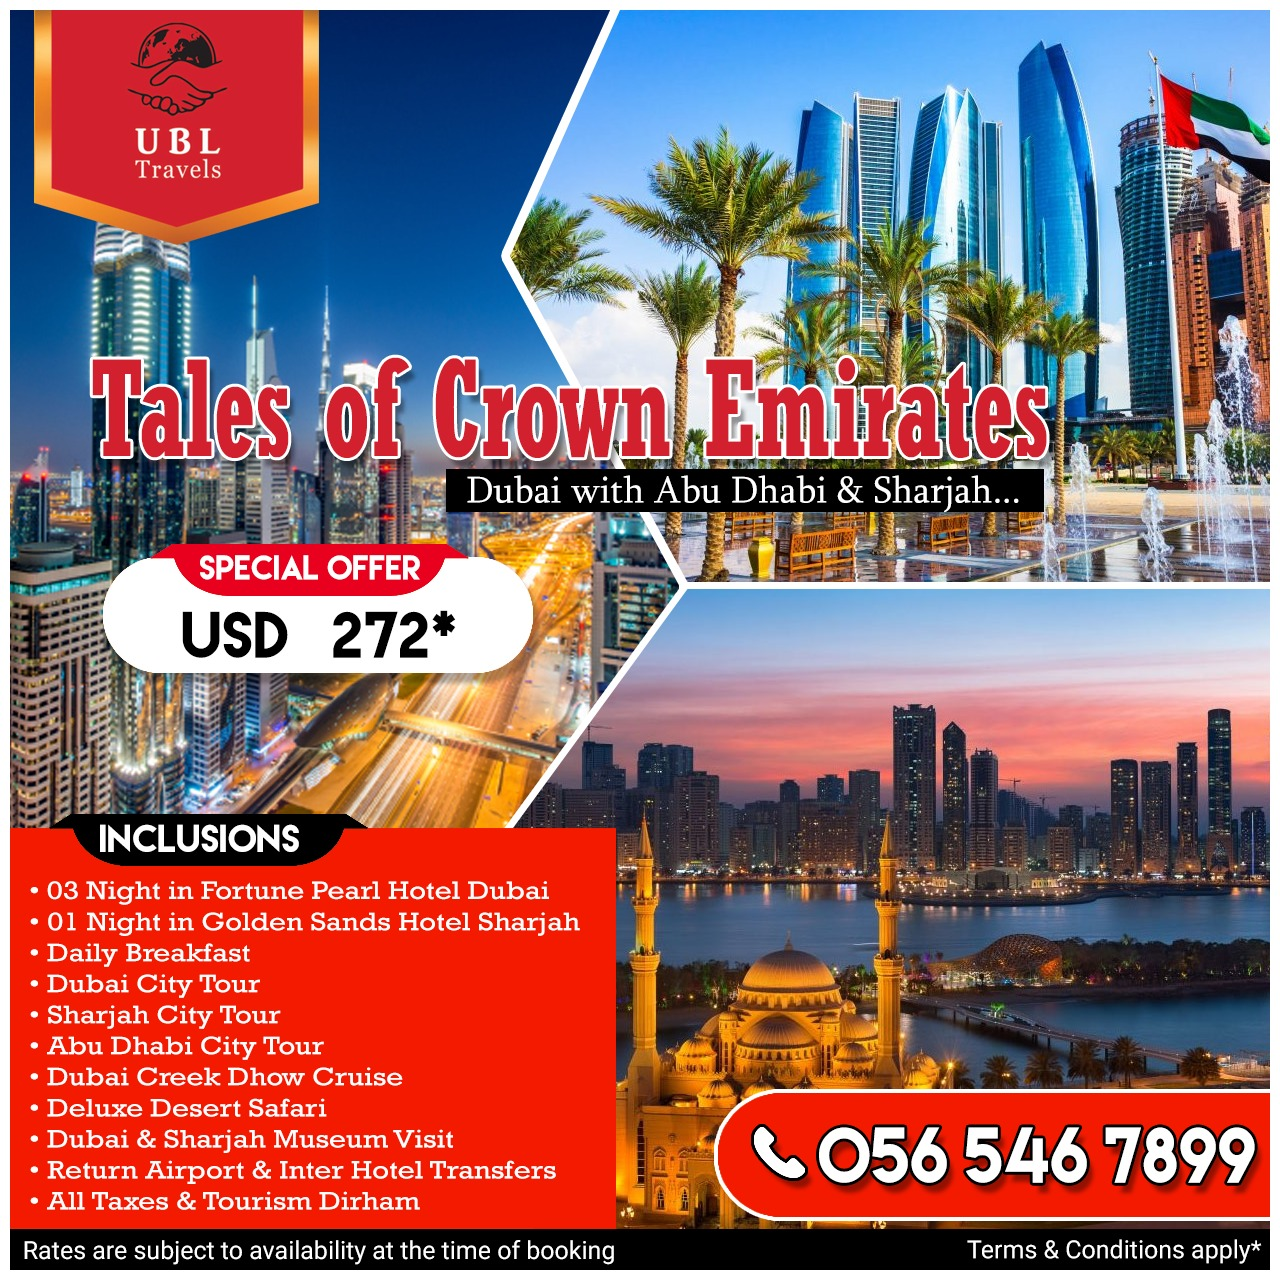 UBL TRAVELS DUBAI